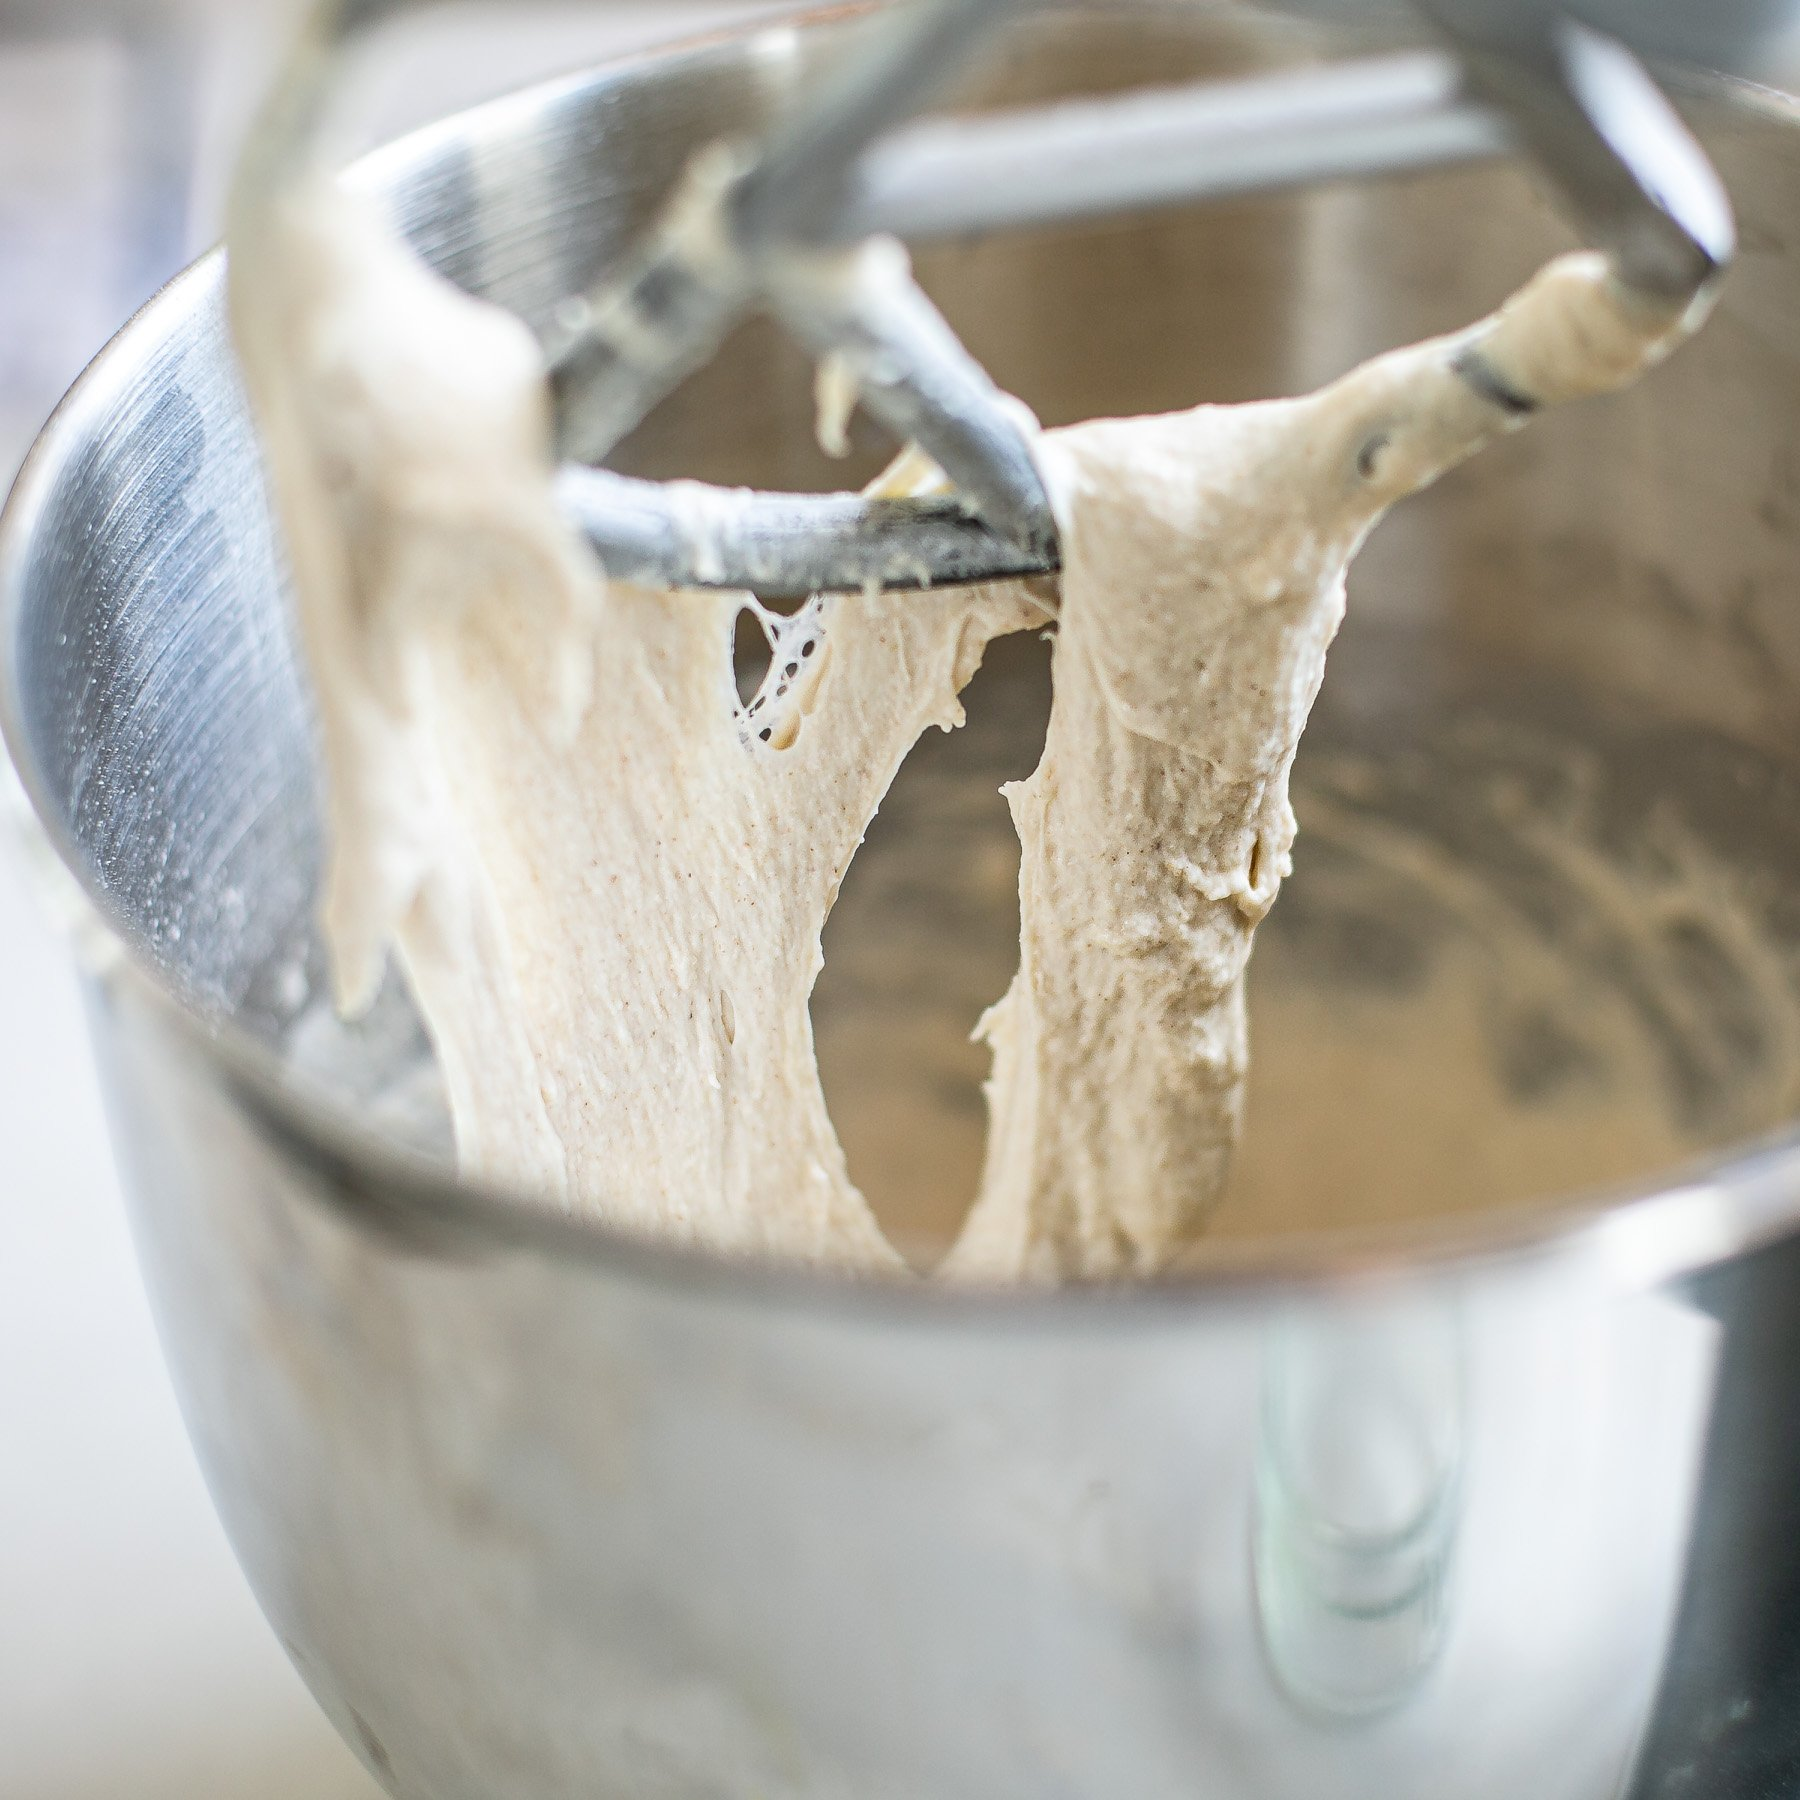 Stretchy and stringy dough for French baguettes in a food mixer